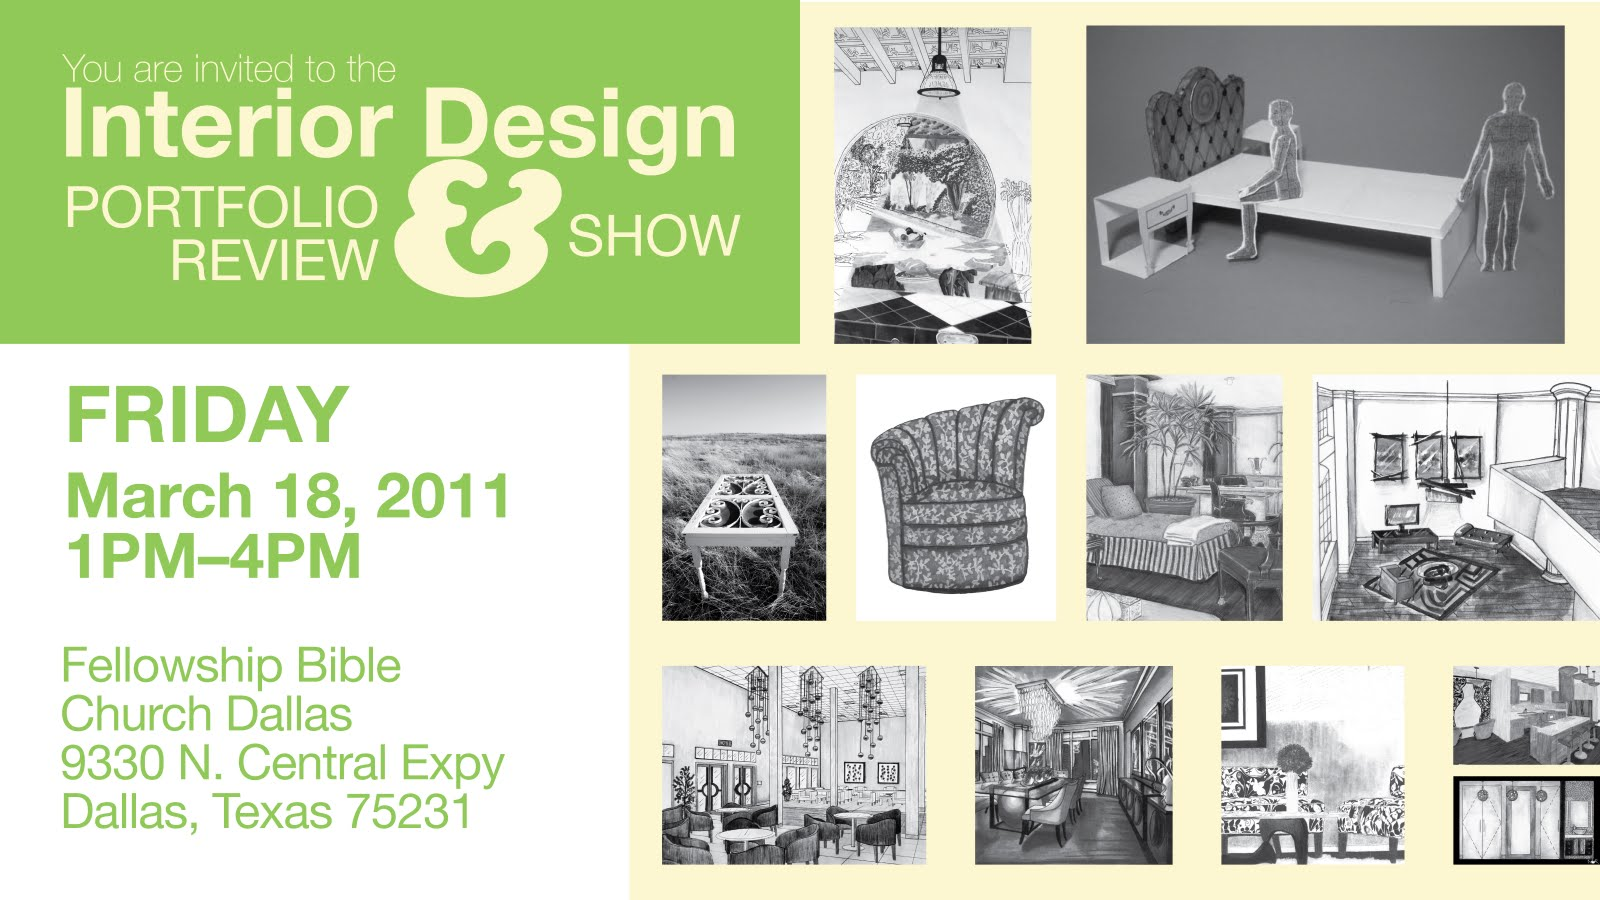 The Next AiD Interior Design Portfolio Show